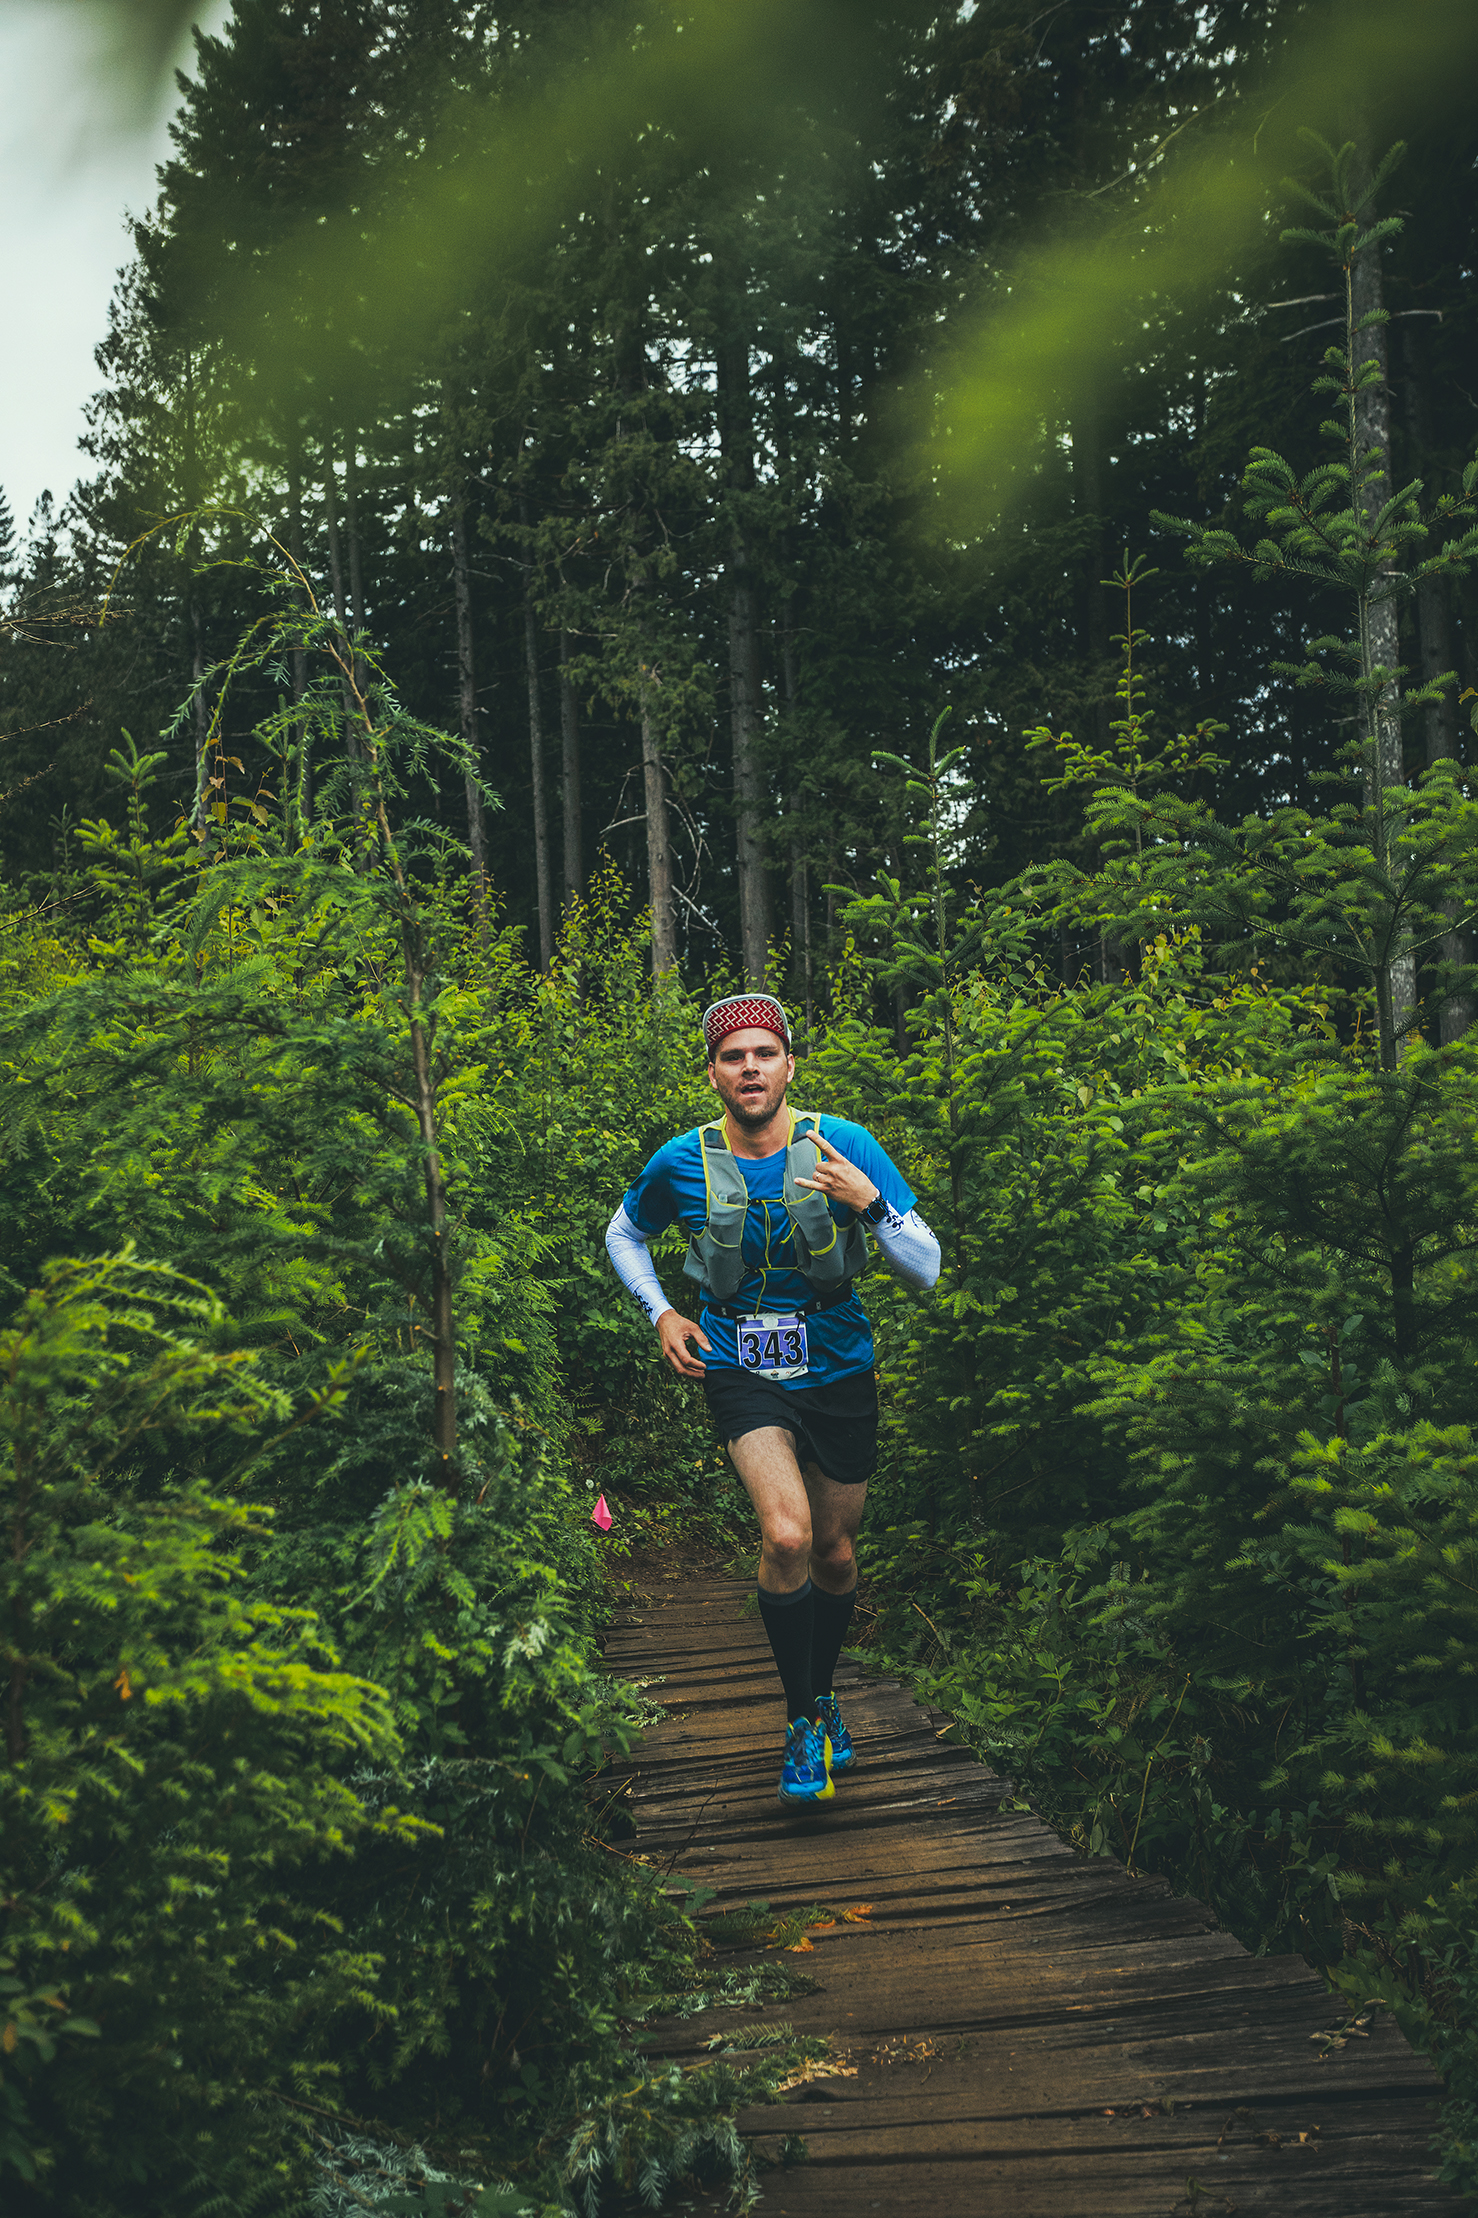 Fraser Valley Trail Races - Bear Mountain - IMG_1476 by Brice Ferre Studio - Vancouver Portrait Adventure and Athlete Photographer.jpg